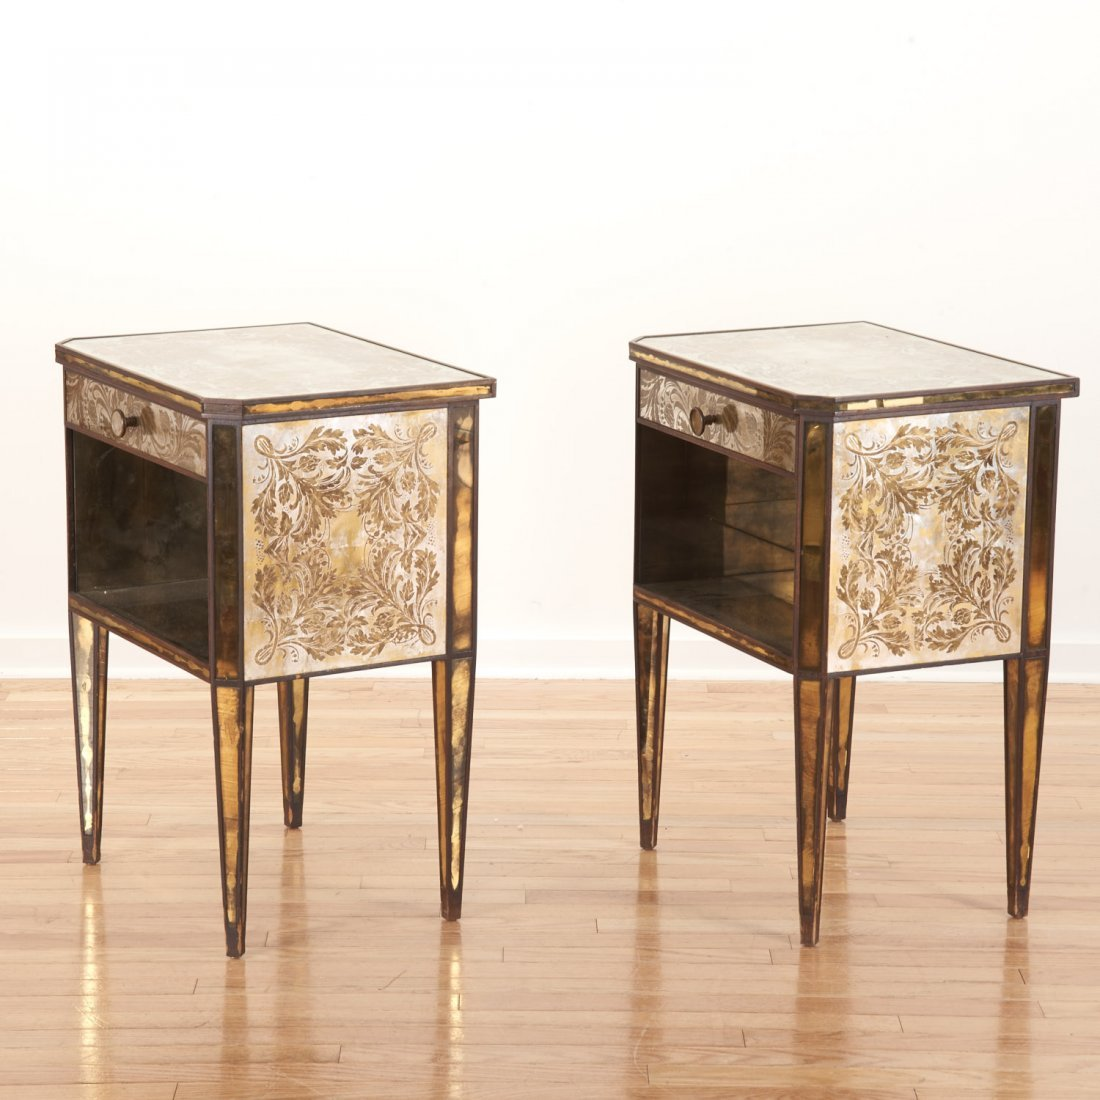 Pair Art Deco mirror paneled side tables - 4